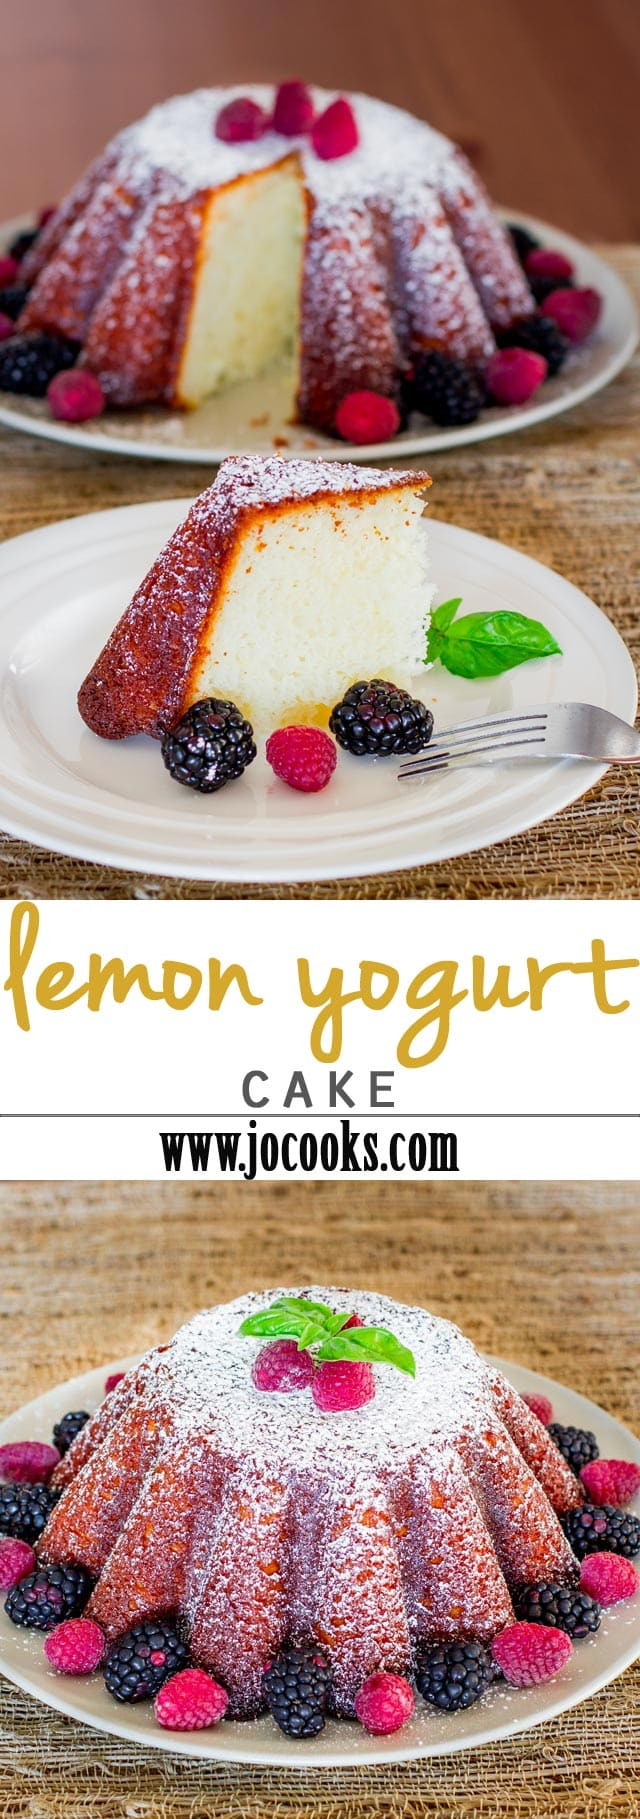 This lemon yogurt cake is simple to make, super moist and lots of lemon flavor. If you love lemons and lemony desserts, then you'll love this delicious cake.